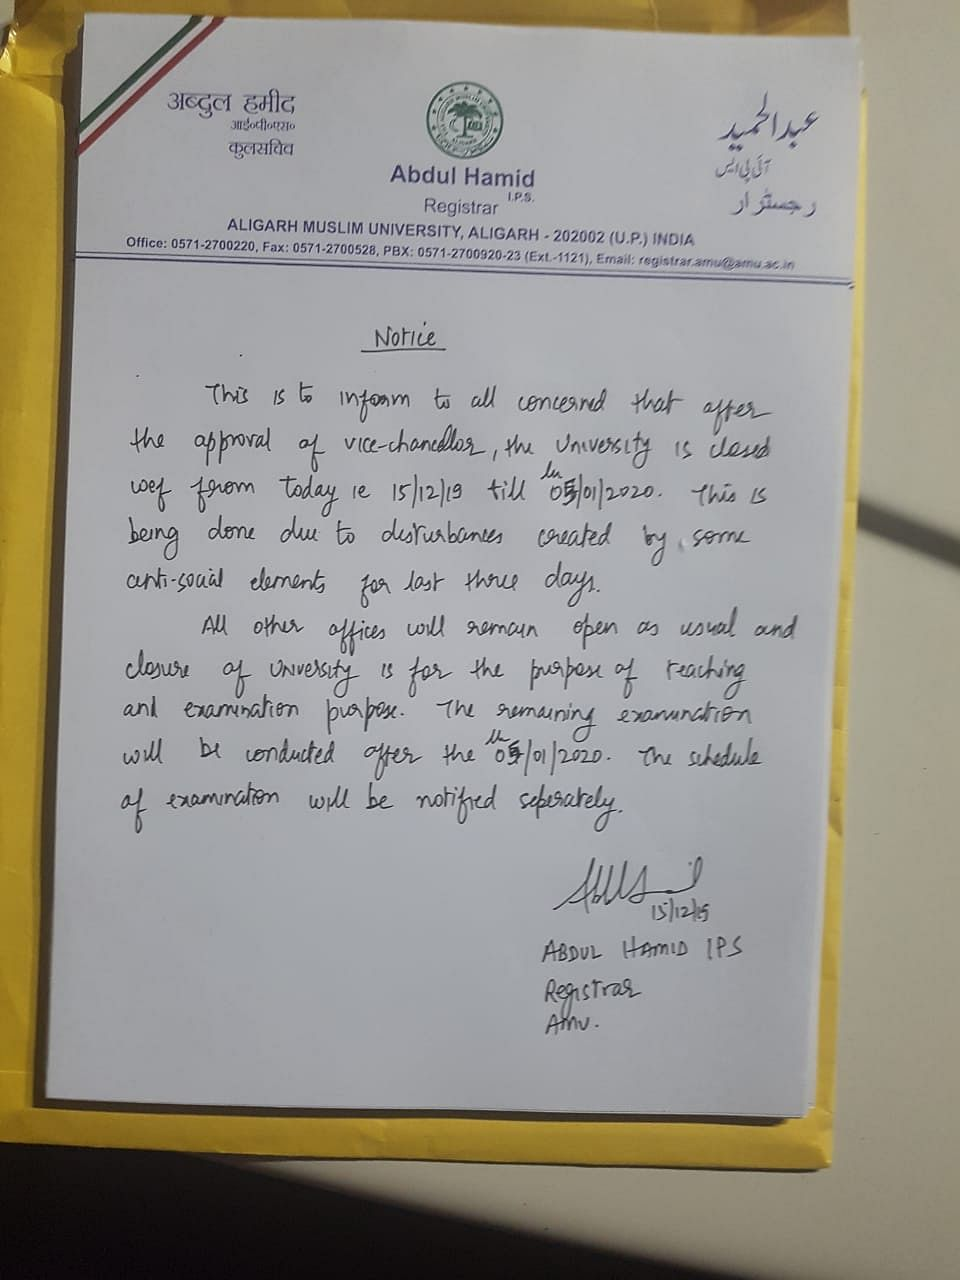 The Registrar released a handwritten notice announcing the closure of the university till 5 January.